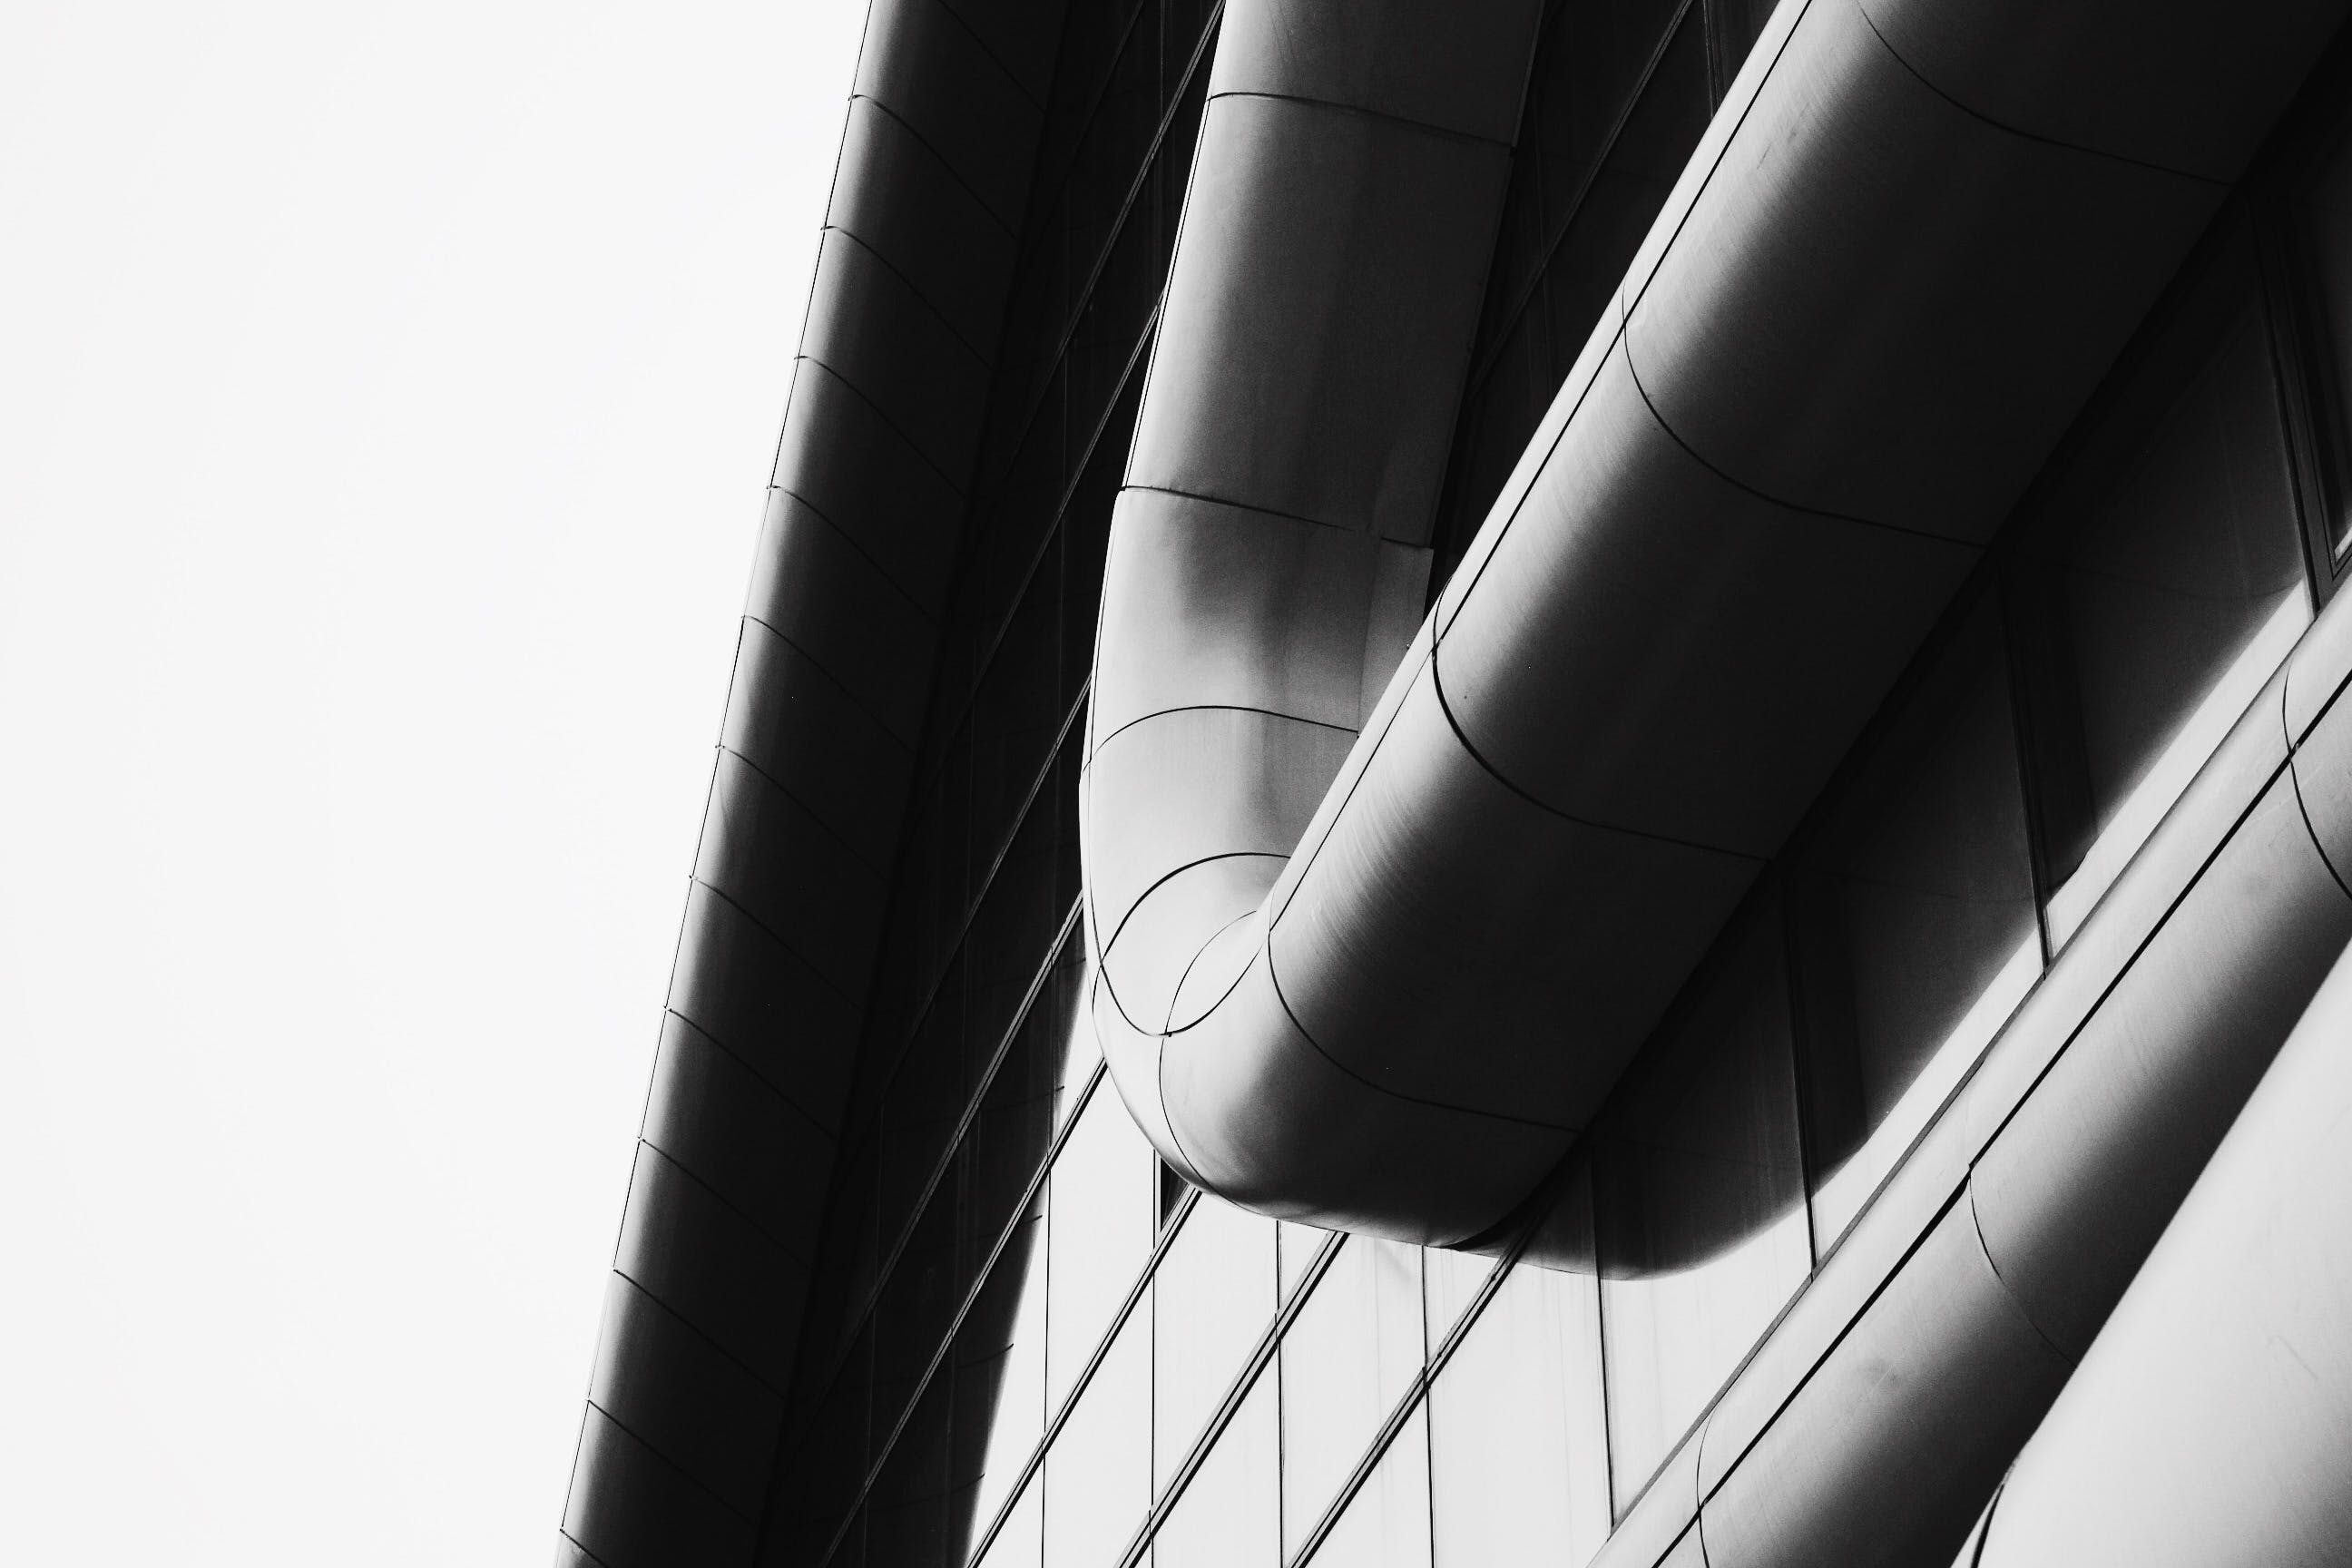 Free stock photo of abstract, architecture, black-and-white, building